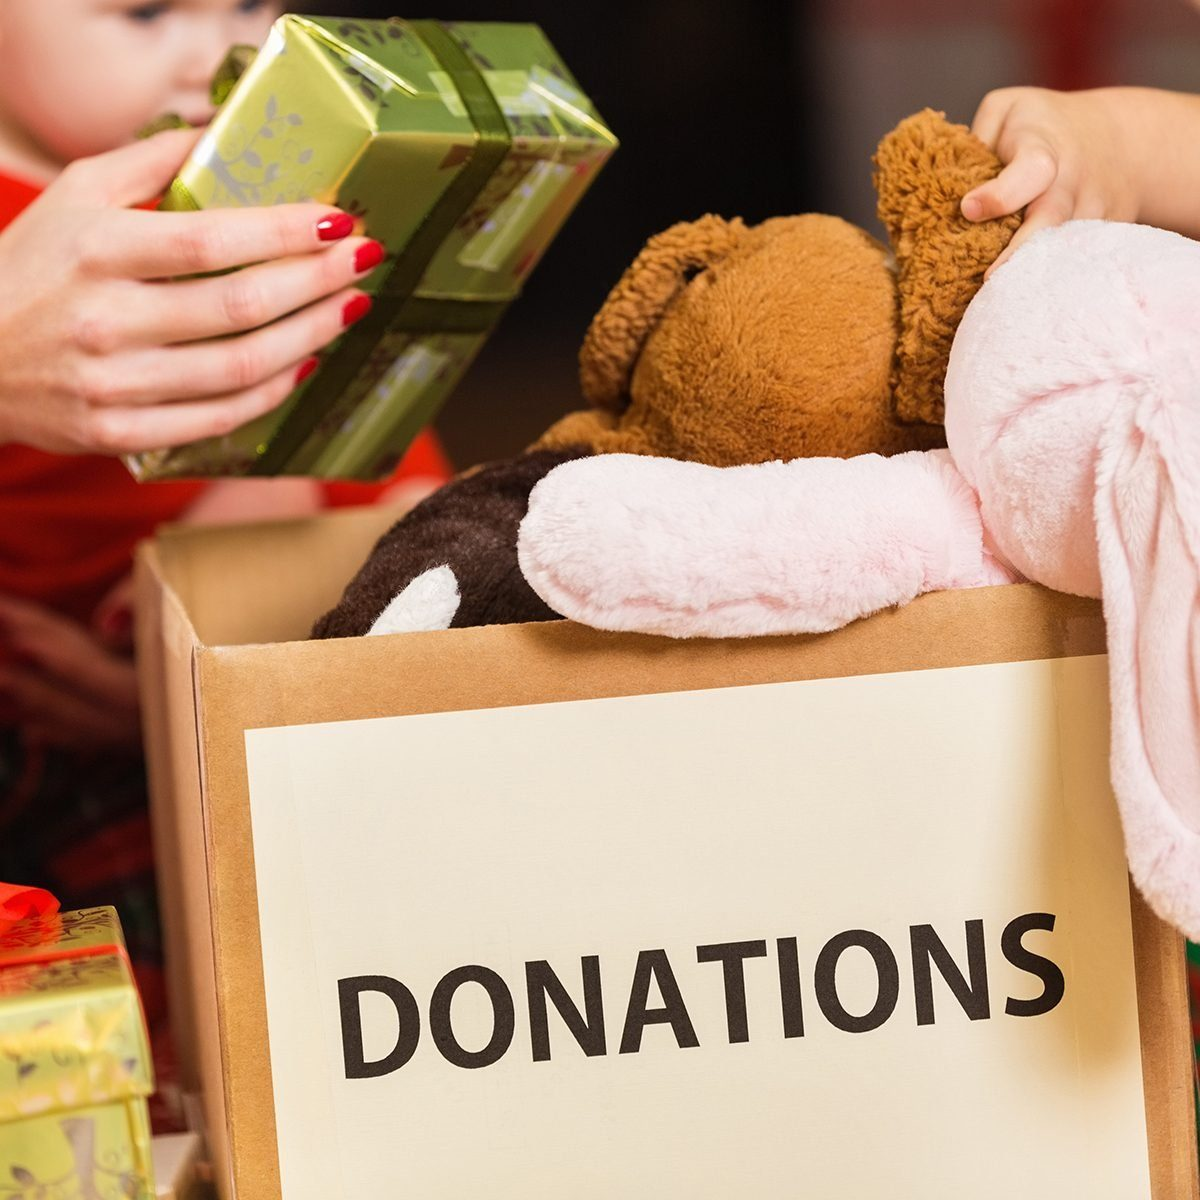 Family donating gifts and toys to charity for Christmas holiday